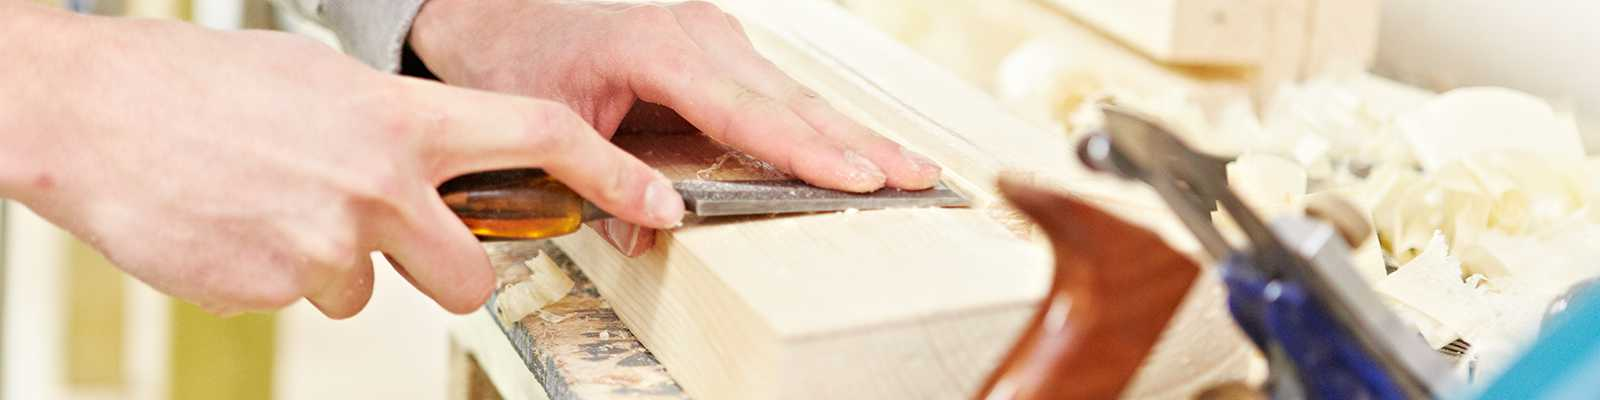 Carpentry & Joinery Courses